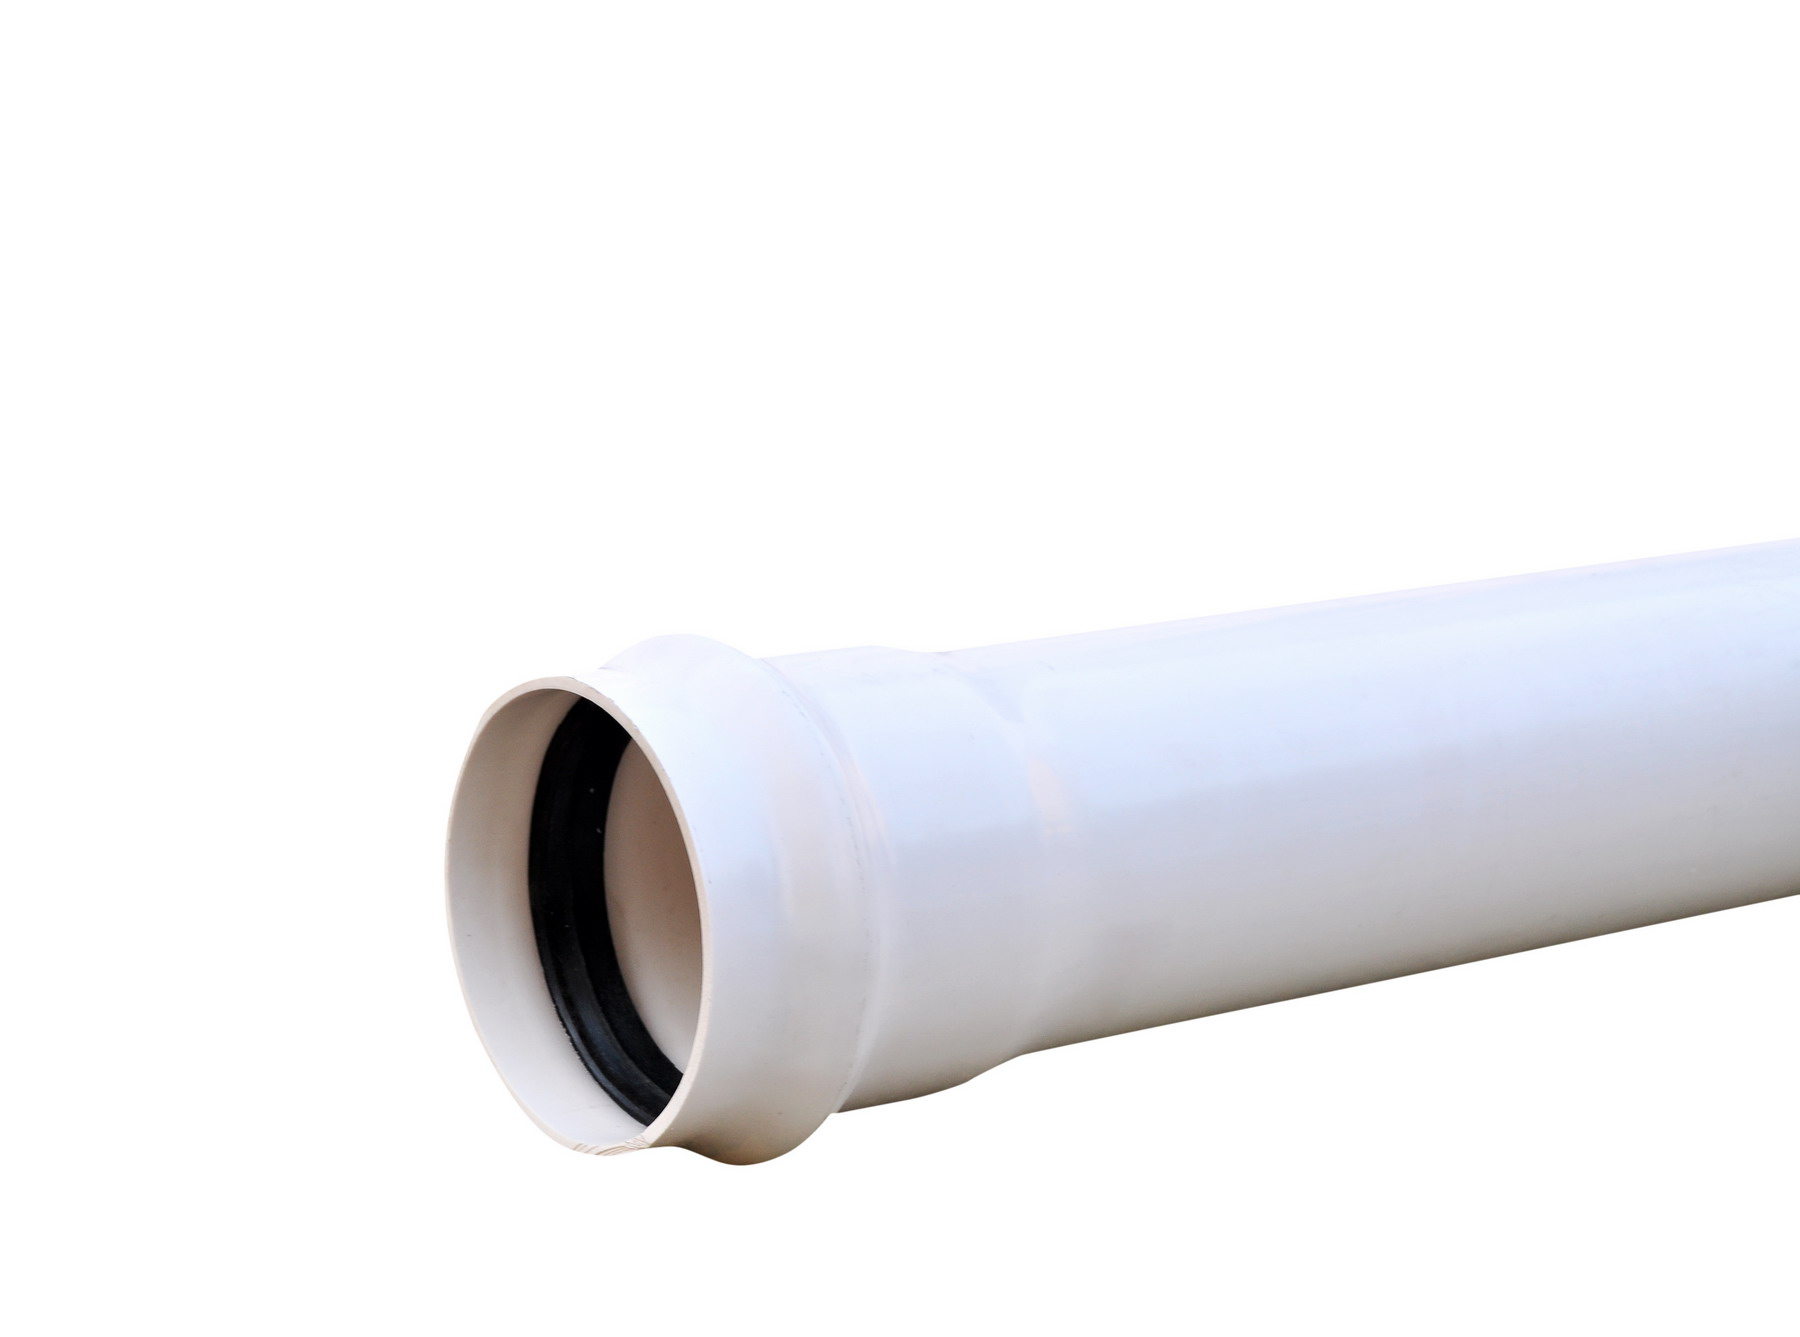 3 Inch Gasketed Cl160 Pvc Pipe